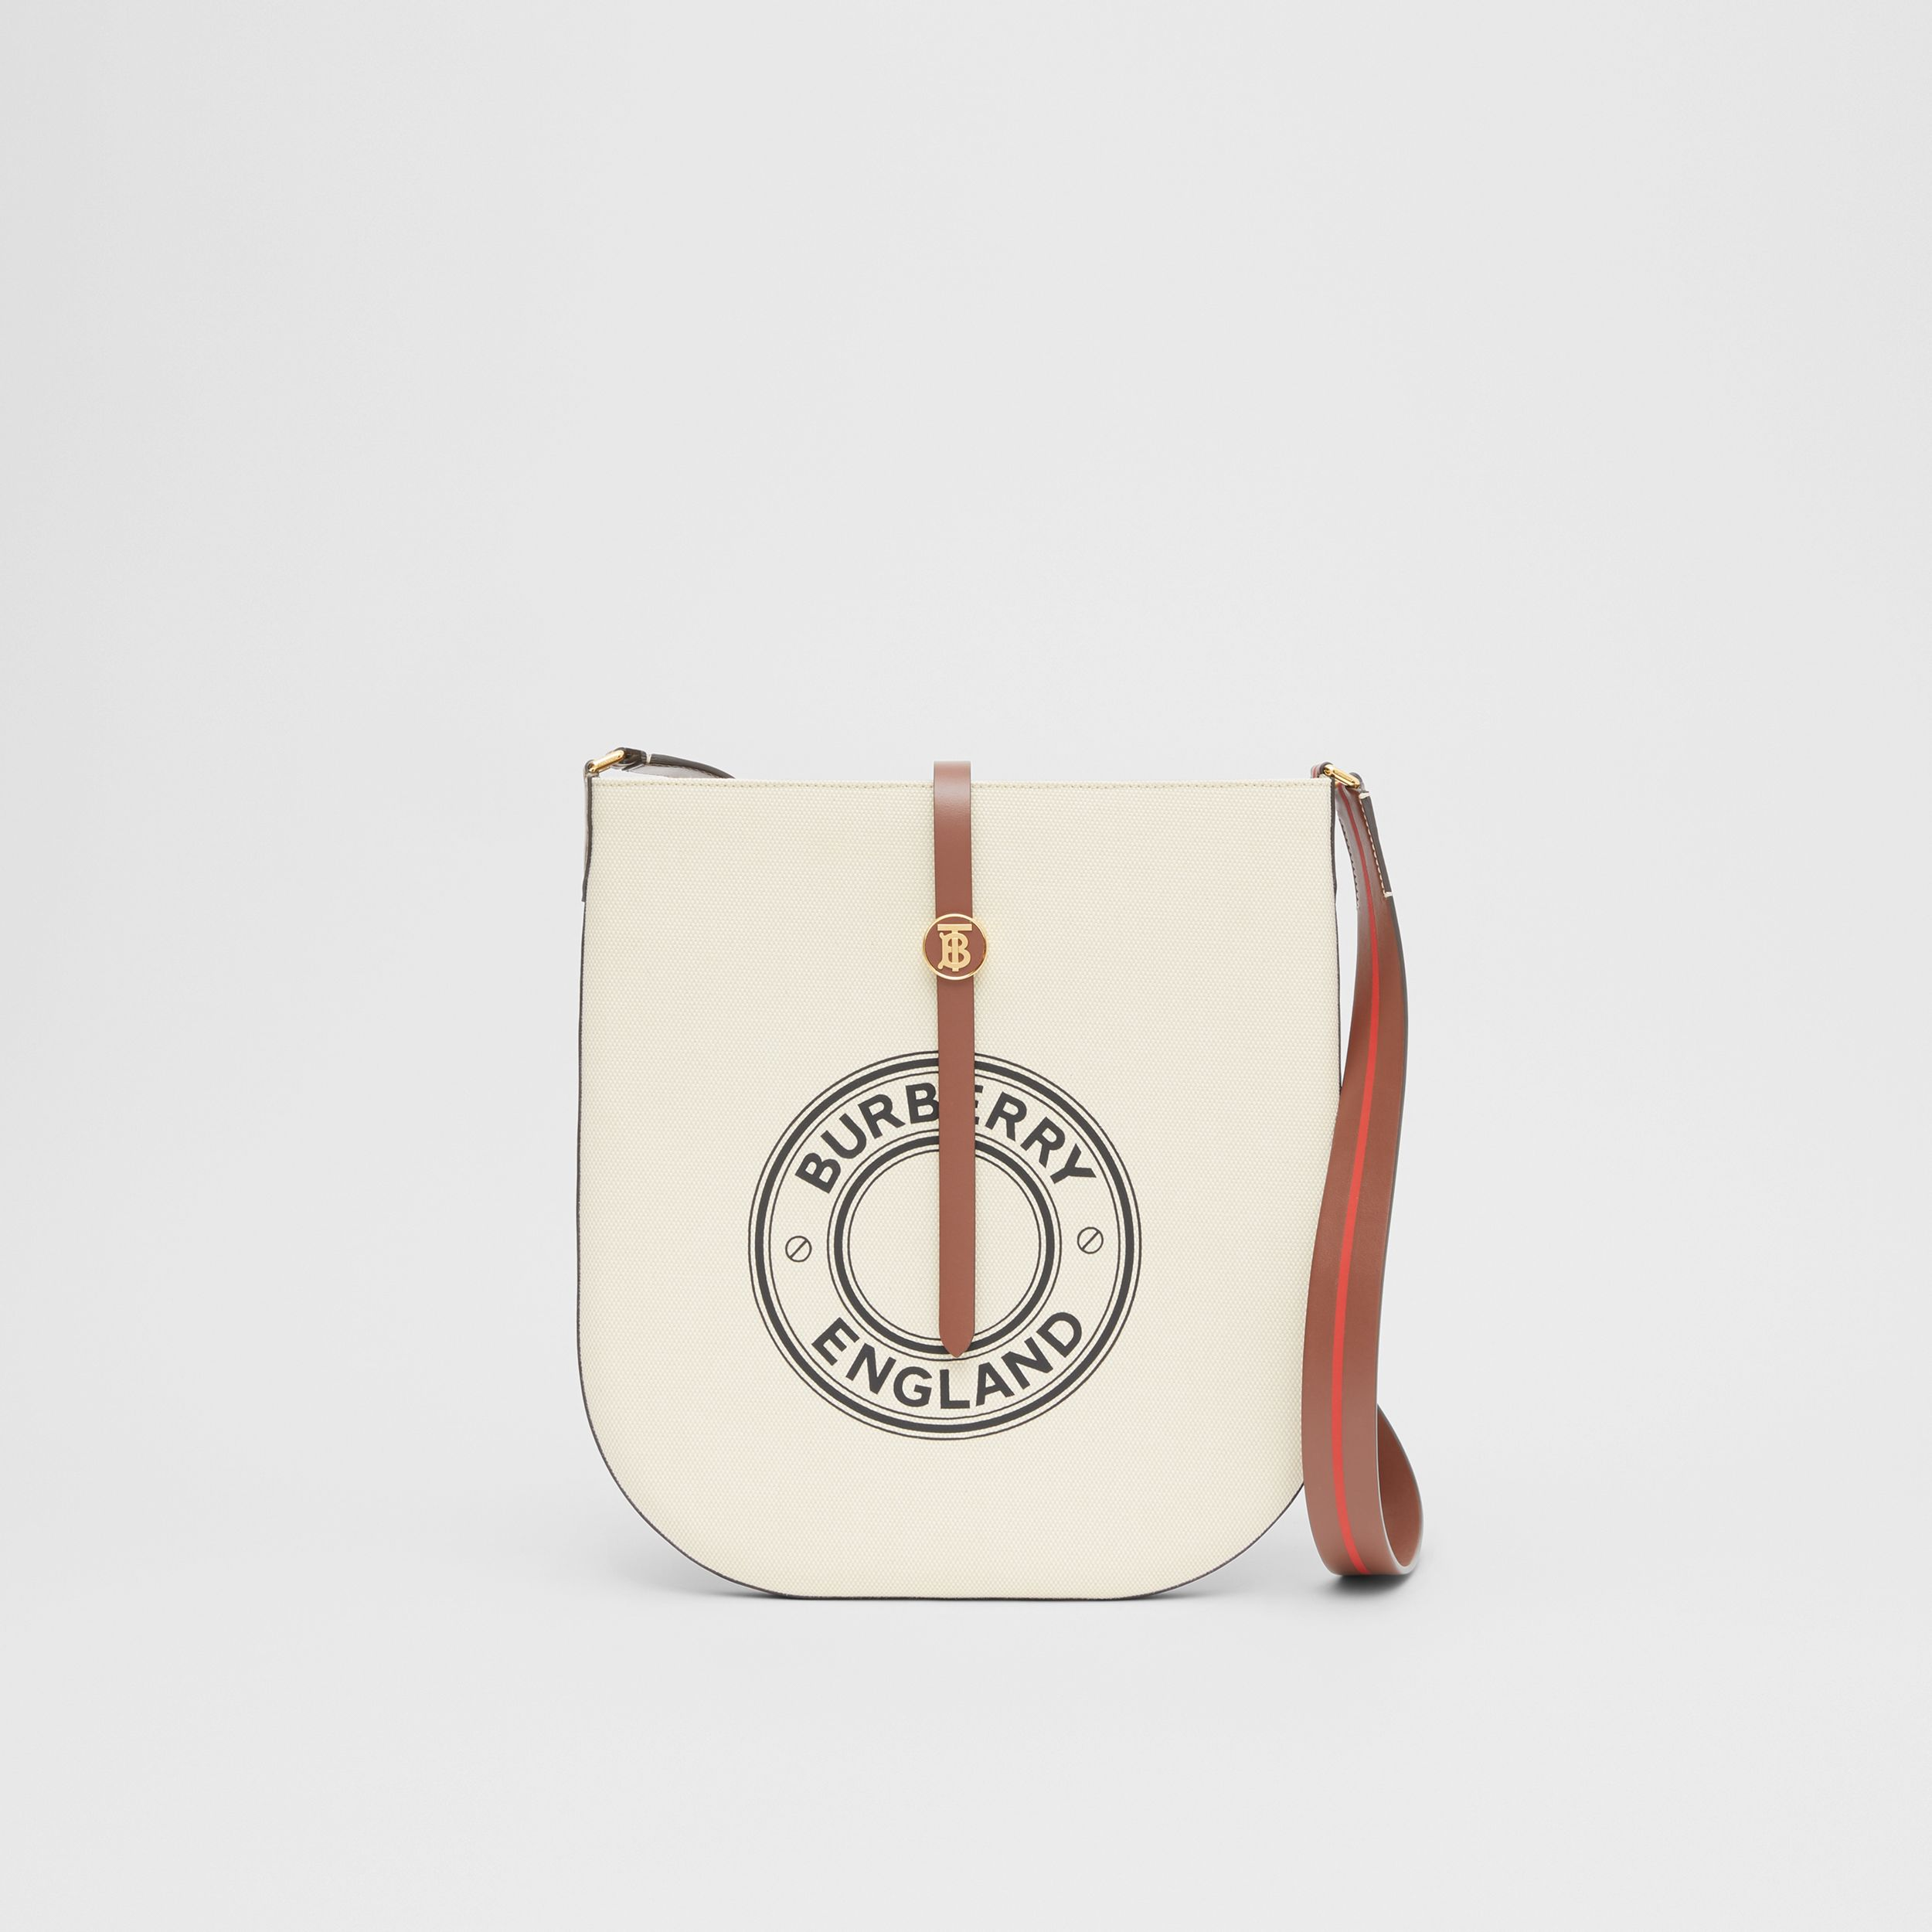 Logo Graphic Cotton Canvas and Leather Anne Bag in Natural/tan - Women | Burberry - 1